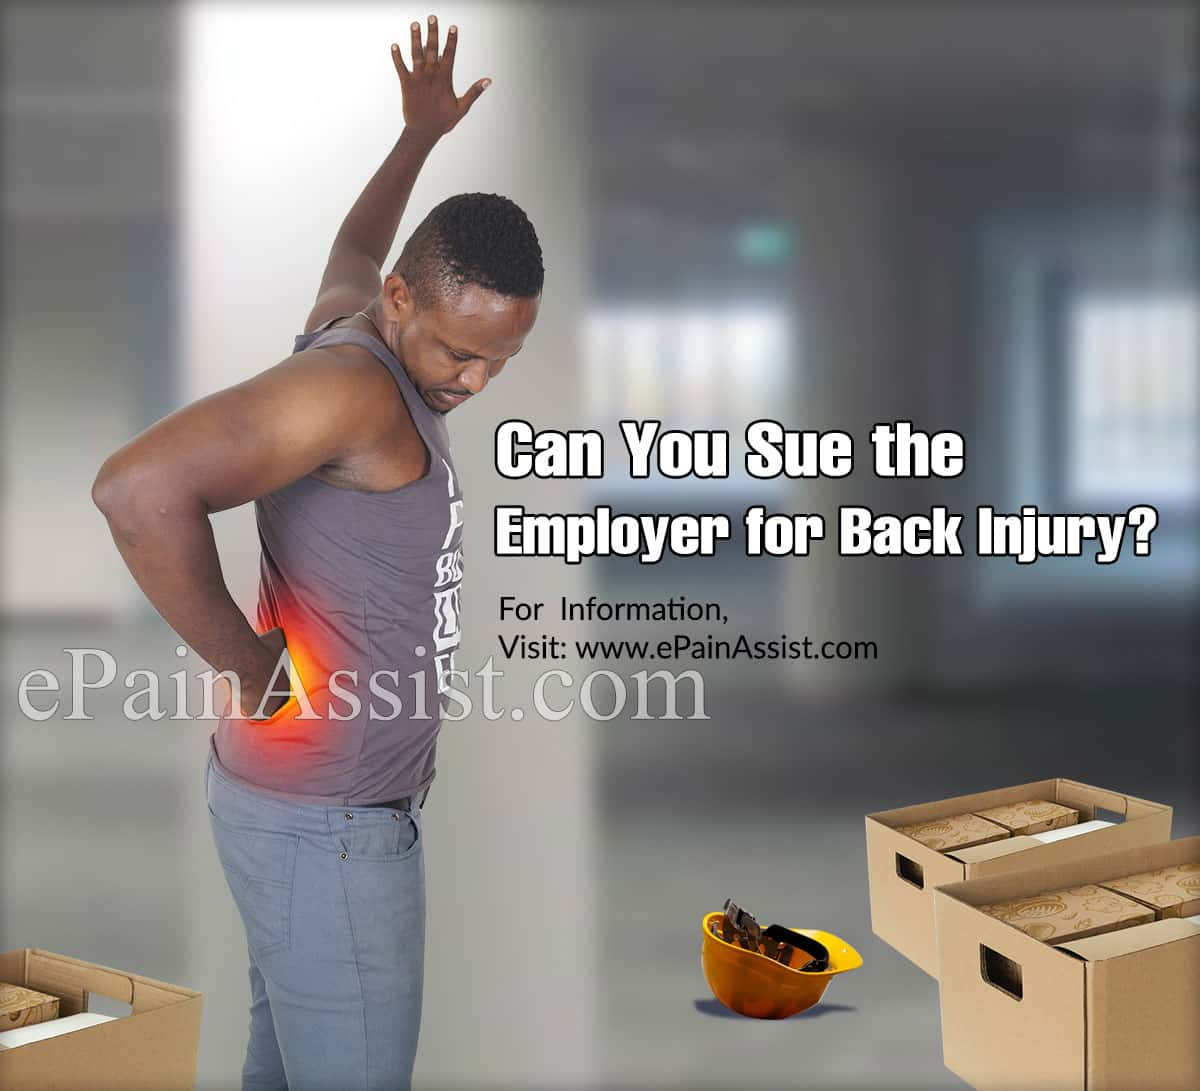 Can You Sue the Employer for Back Injury?